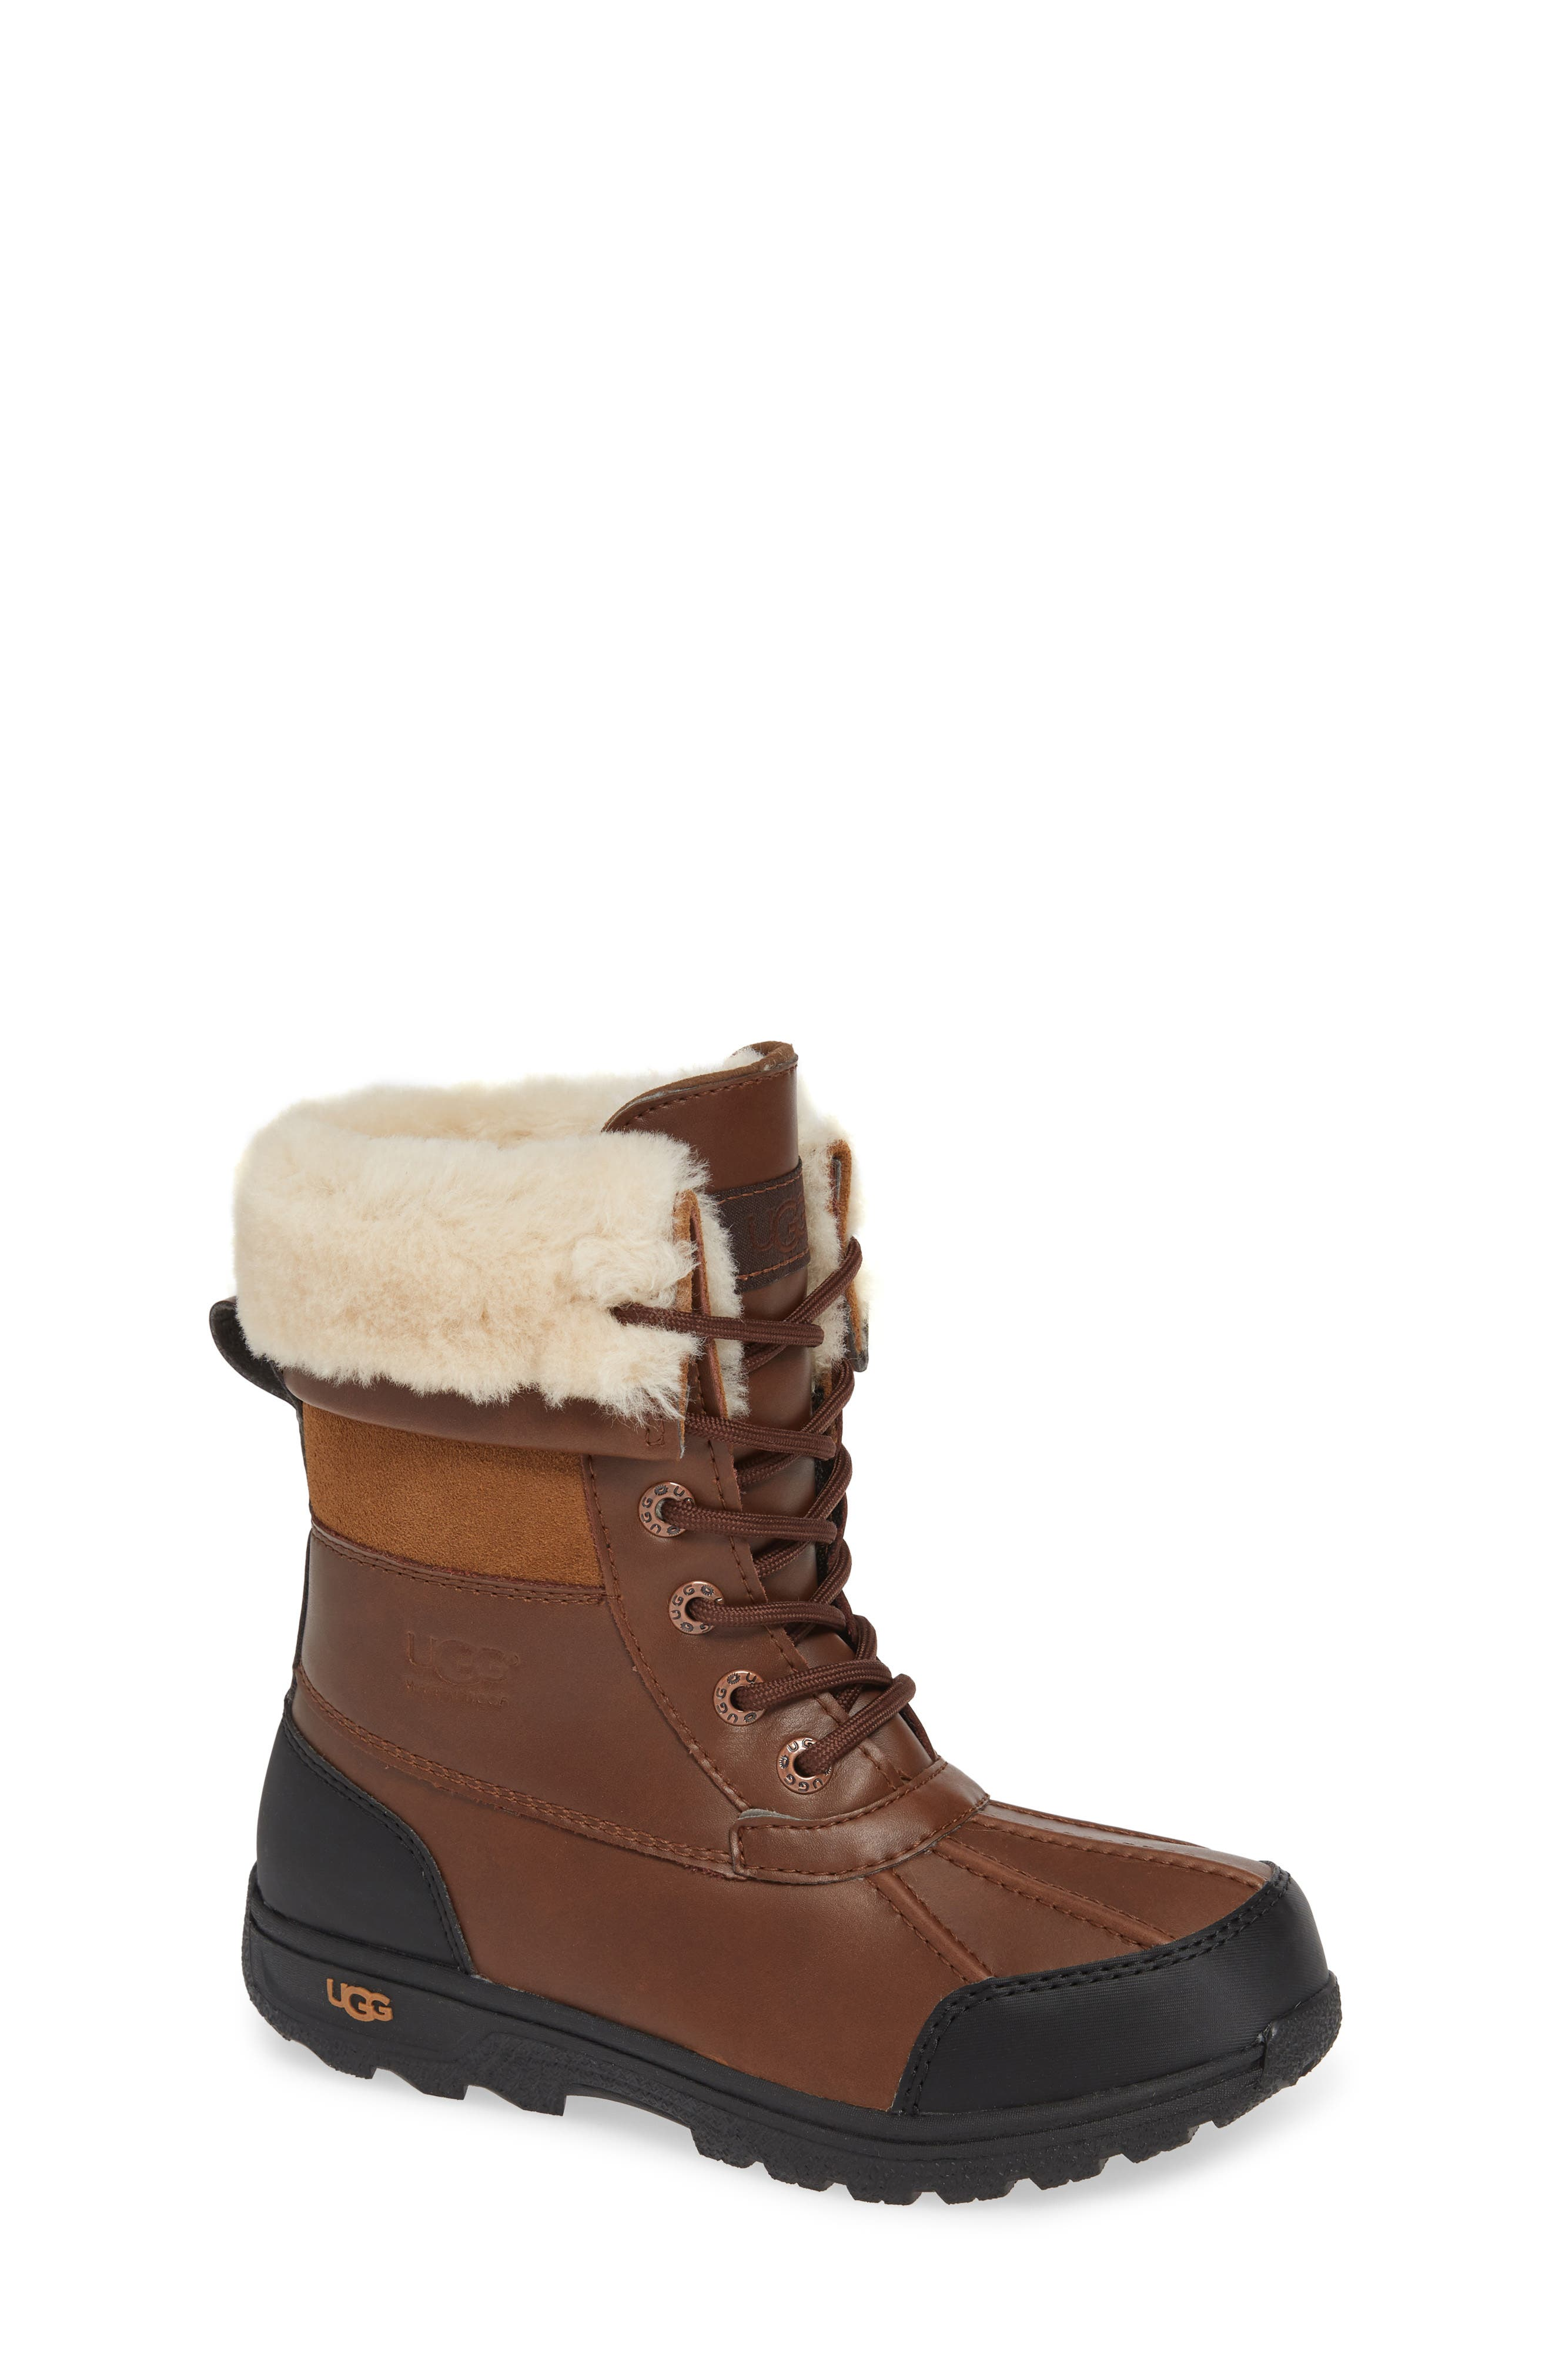 Butte II Waterproof Winter Boot,                         Main,                         color, WORCHESTER